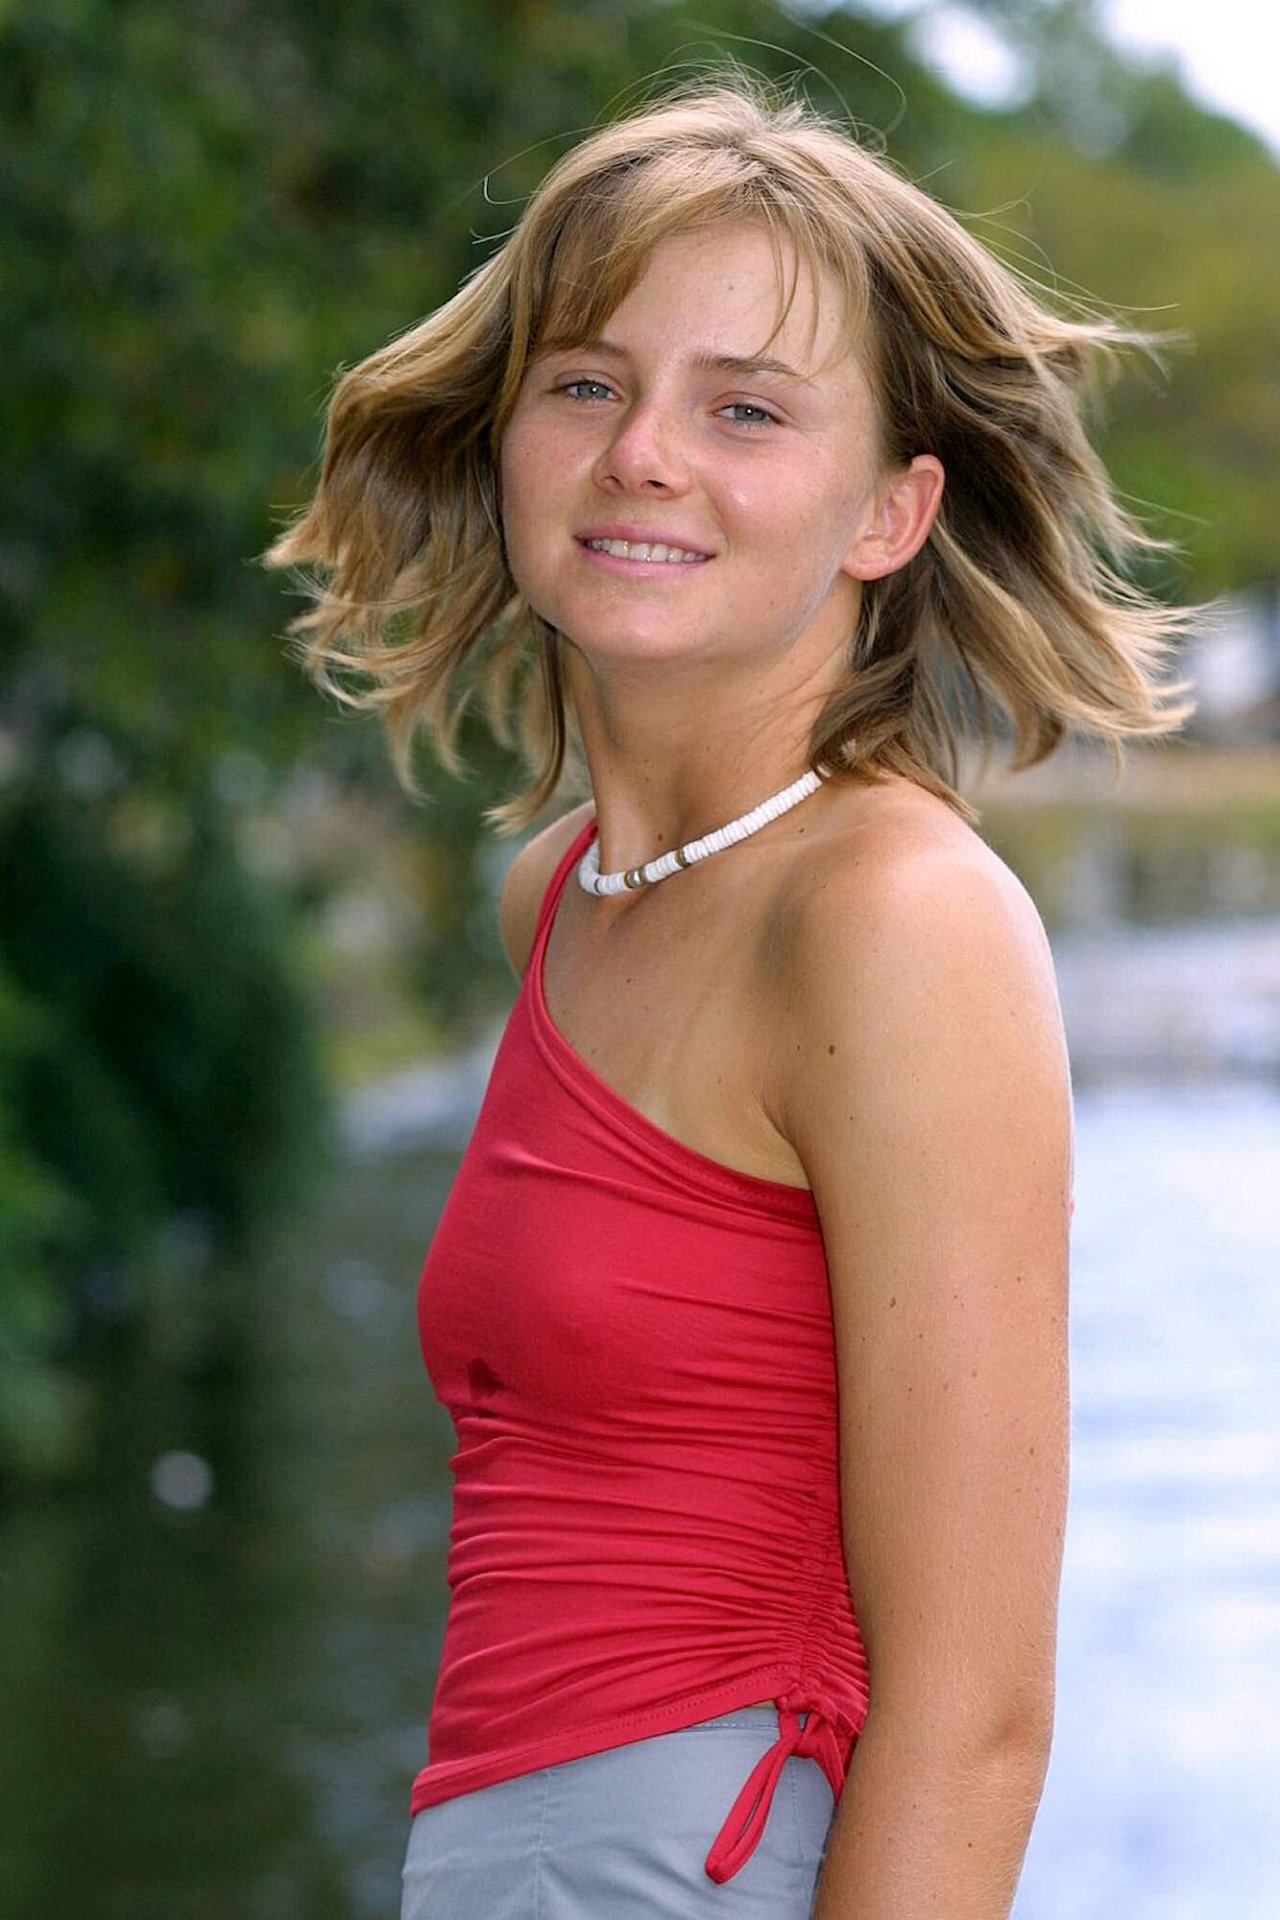 daniela hantuchova photo 37 of 97 pics wallpaper   photo